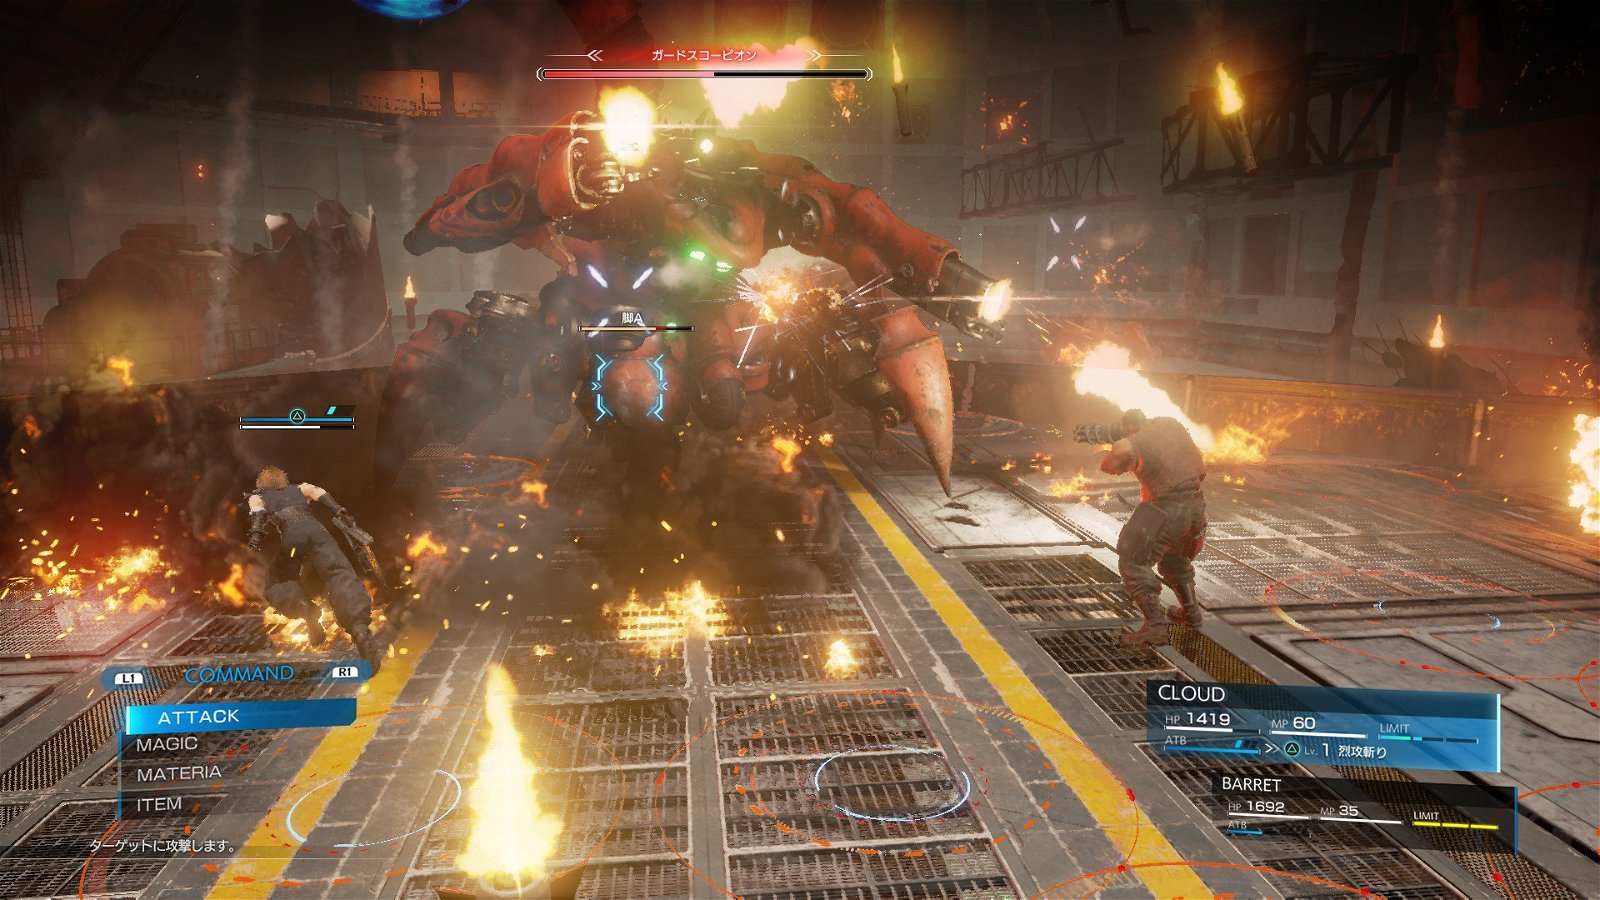 Final Fantasy VII Remake's Battle System Will Lean Towards Action